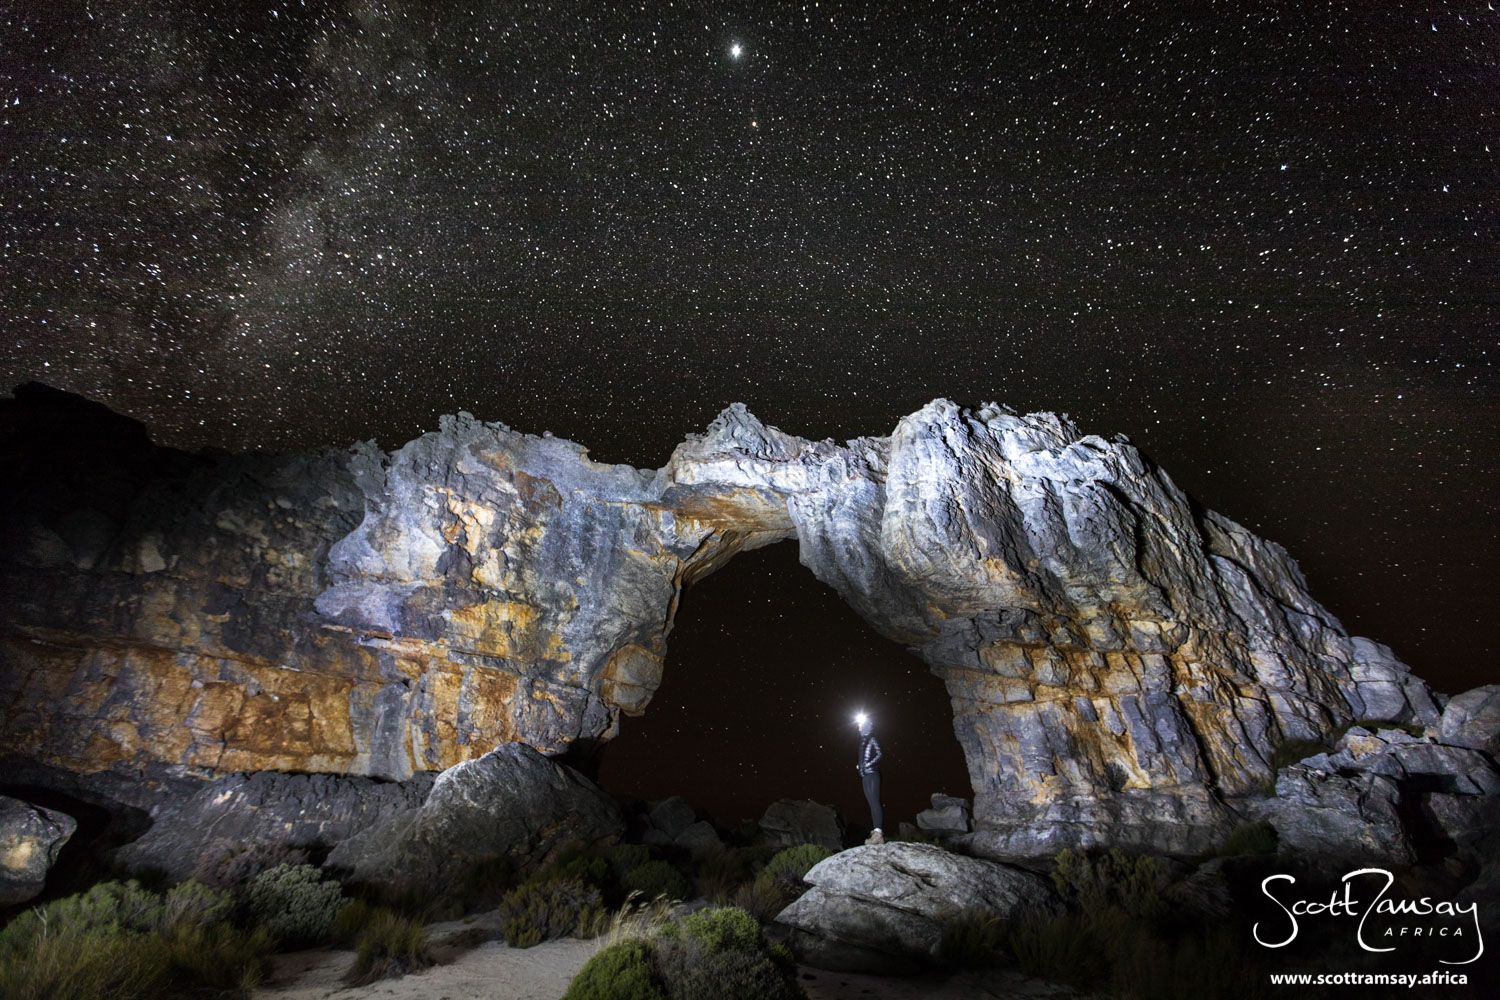 We are all made of star dust. Scientifically proven, but truly experienced when sleeping under the stars at the Wolfberg Arch.